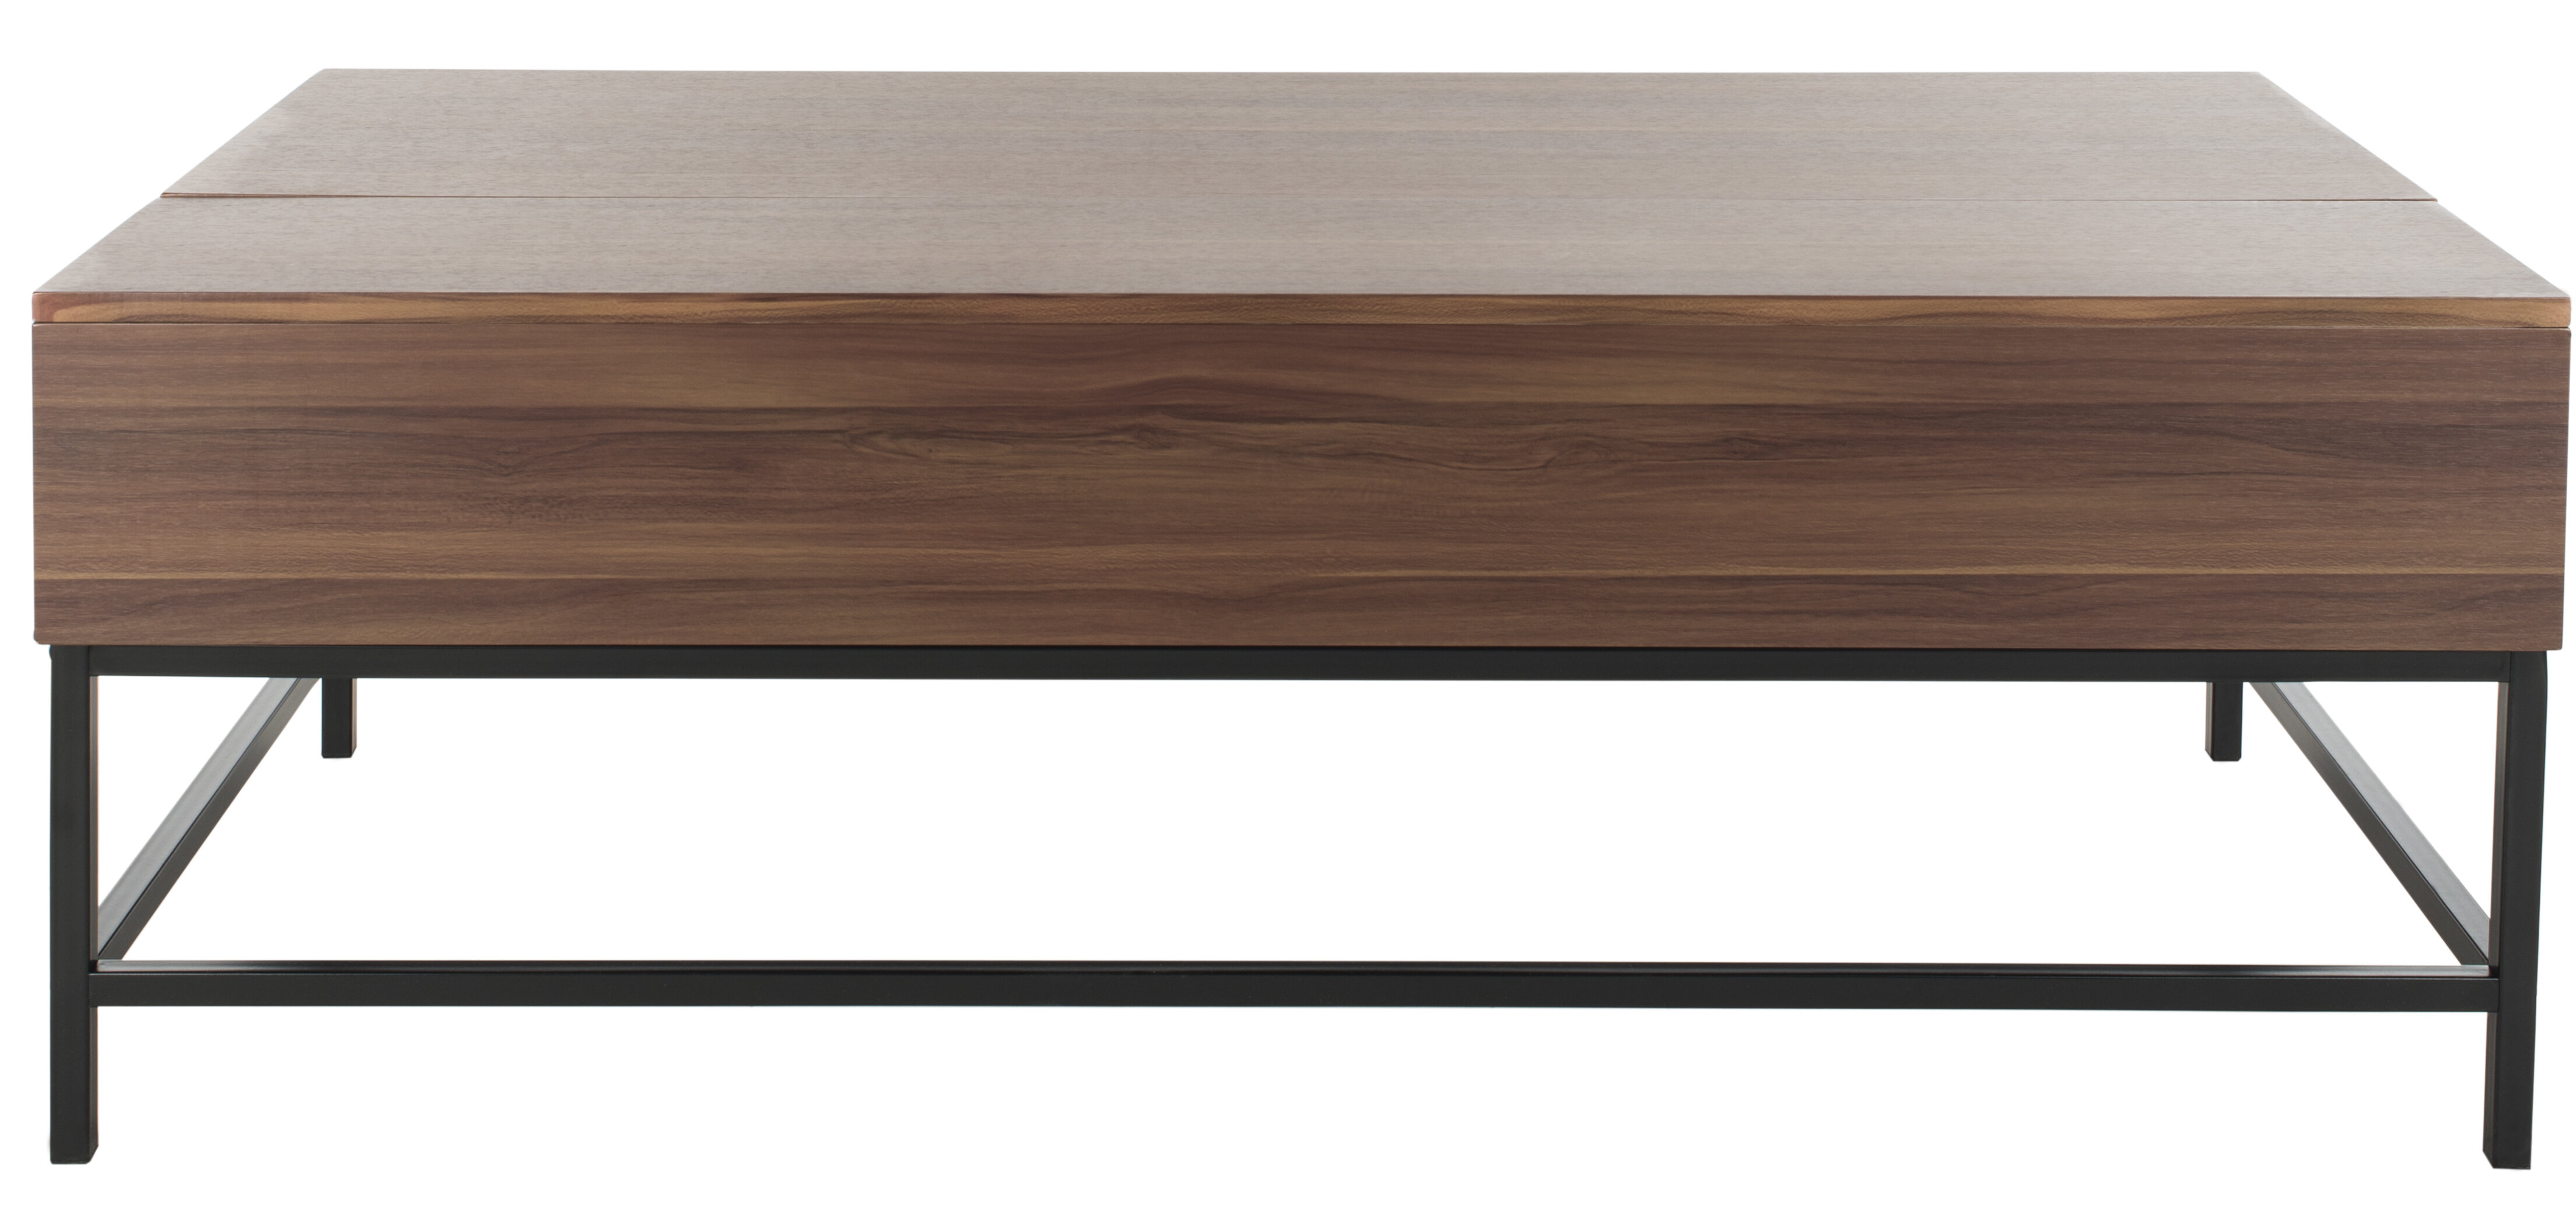 Ahren Lift Top Coffee Table With Storage